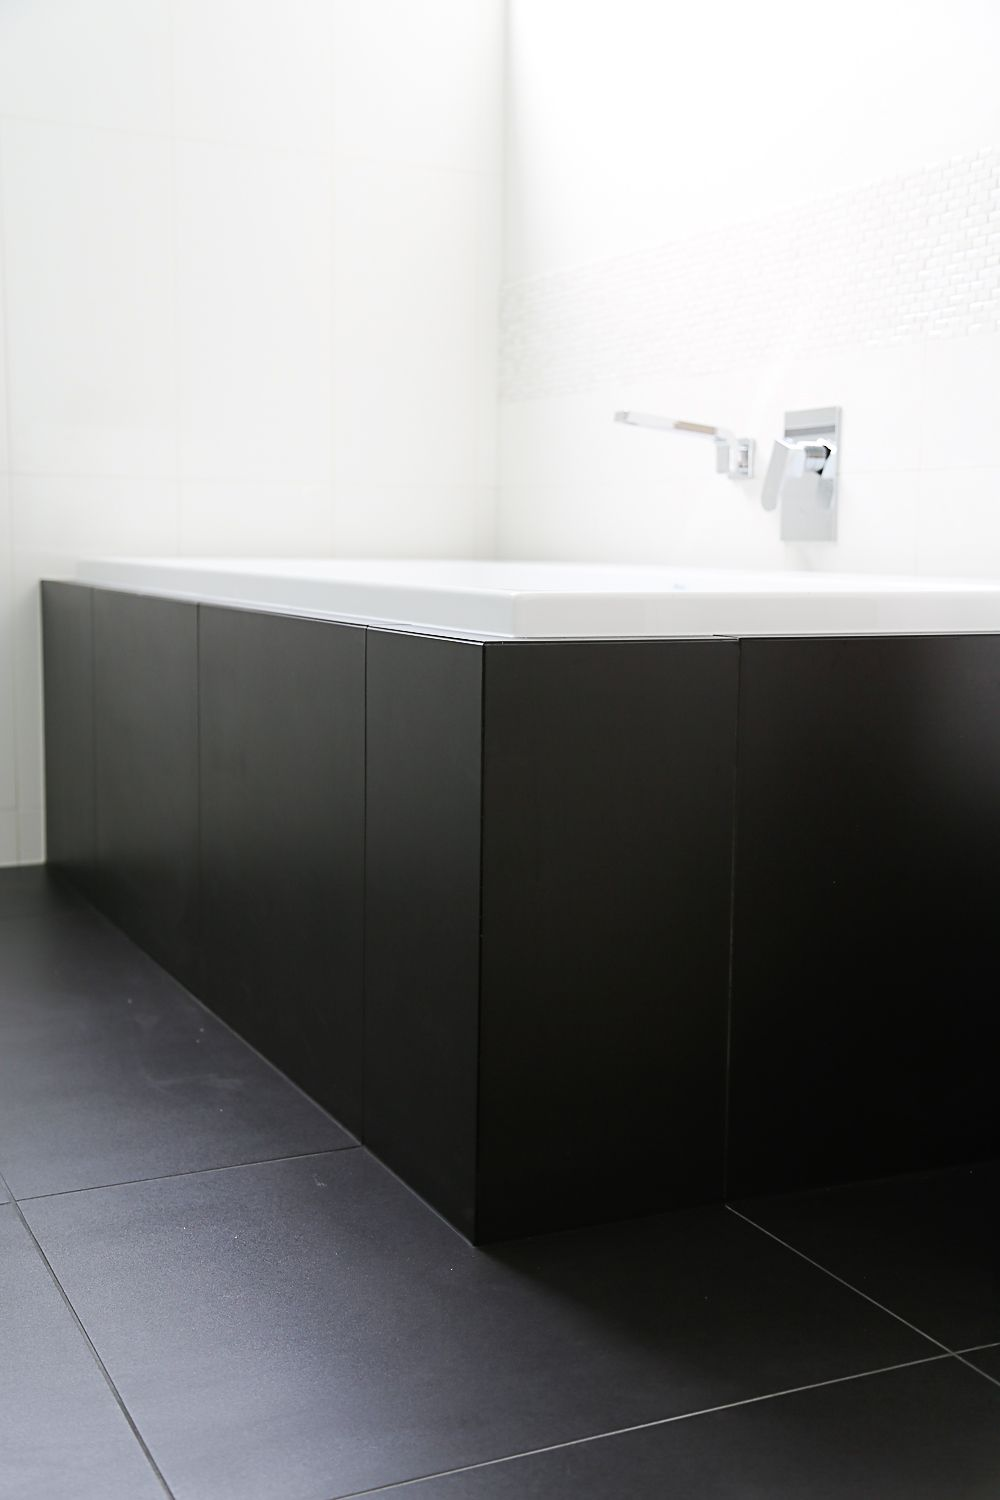 Black Floor Tiles And White Wall Tiles With Mosaic Feature Tiles